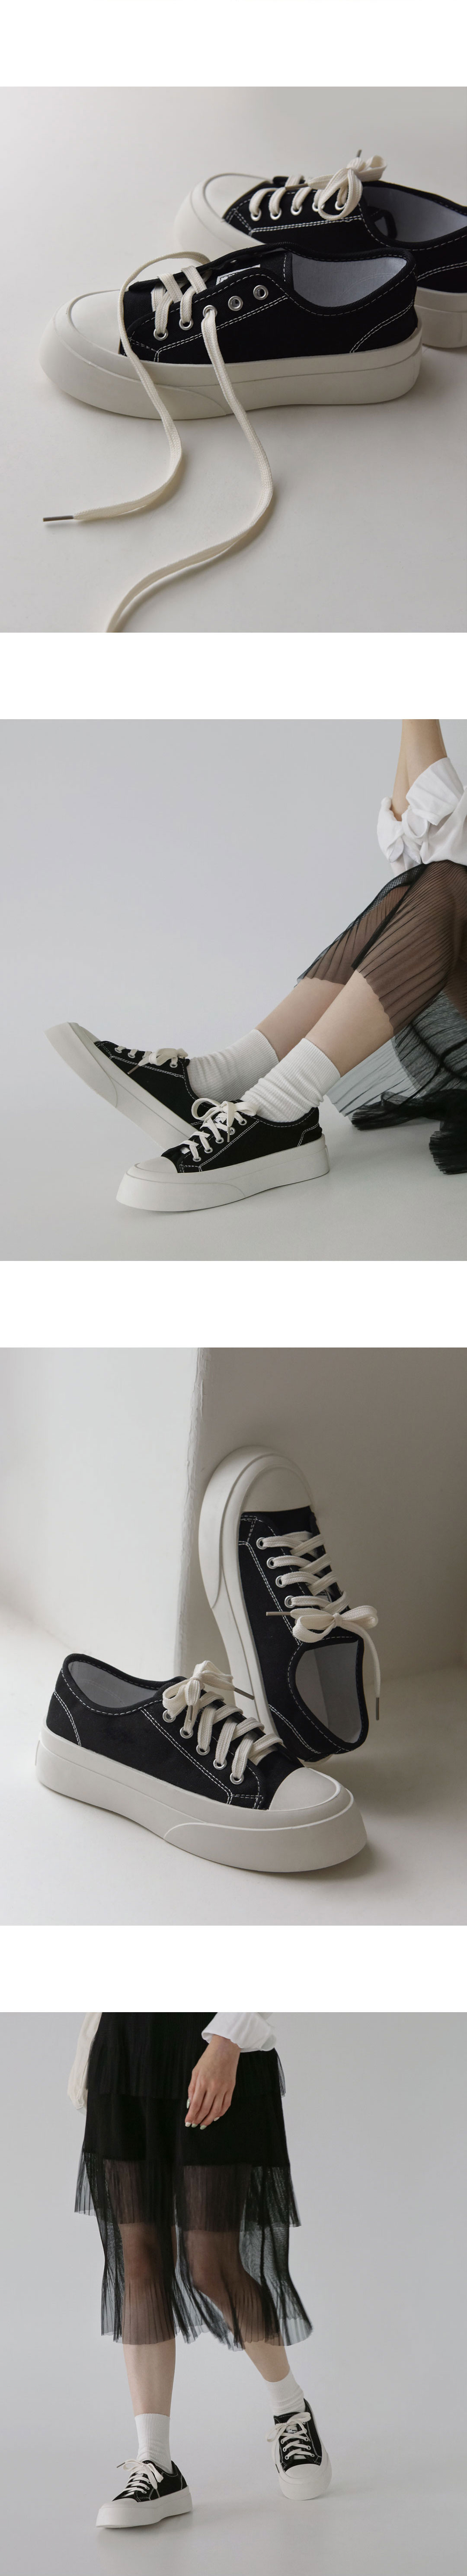 Willy Basic Sneakers Sneakers SNFBR0d149